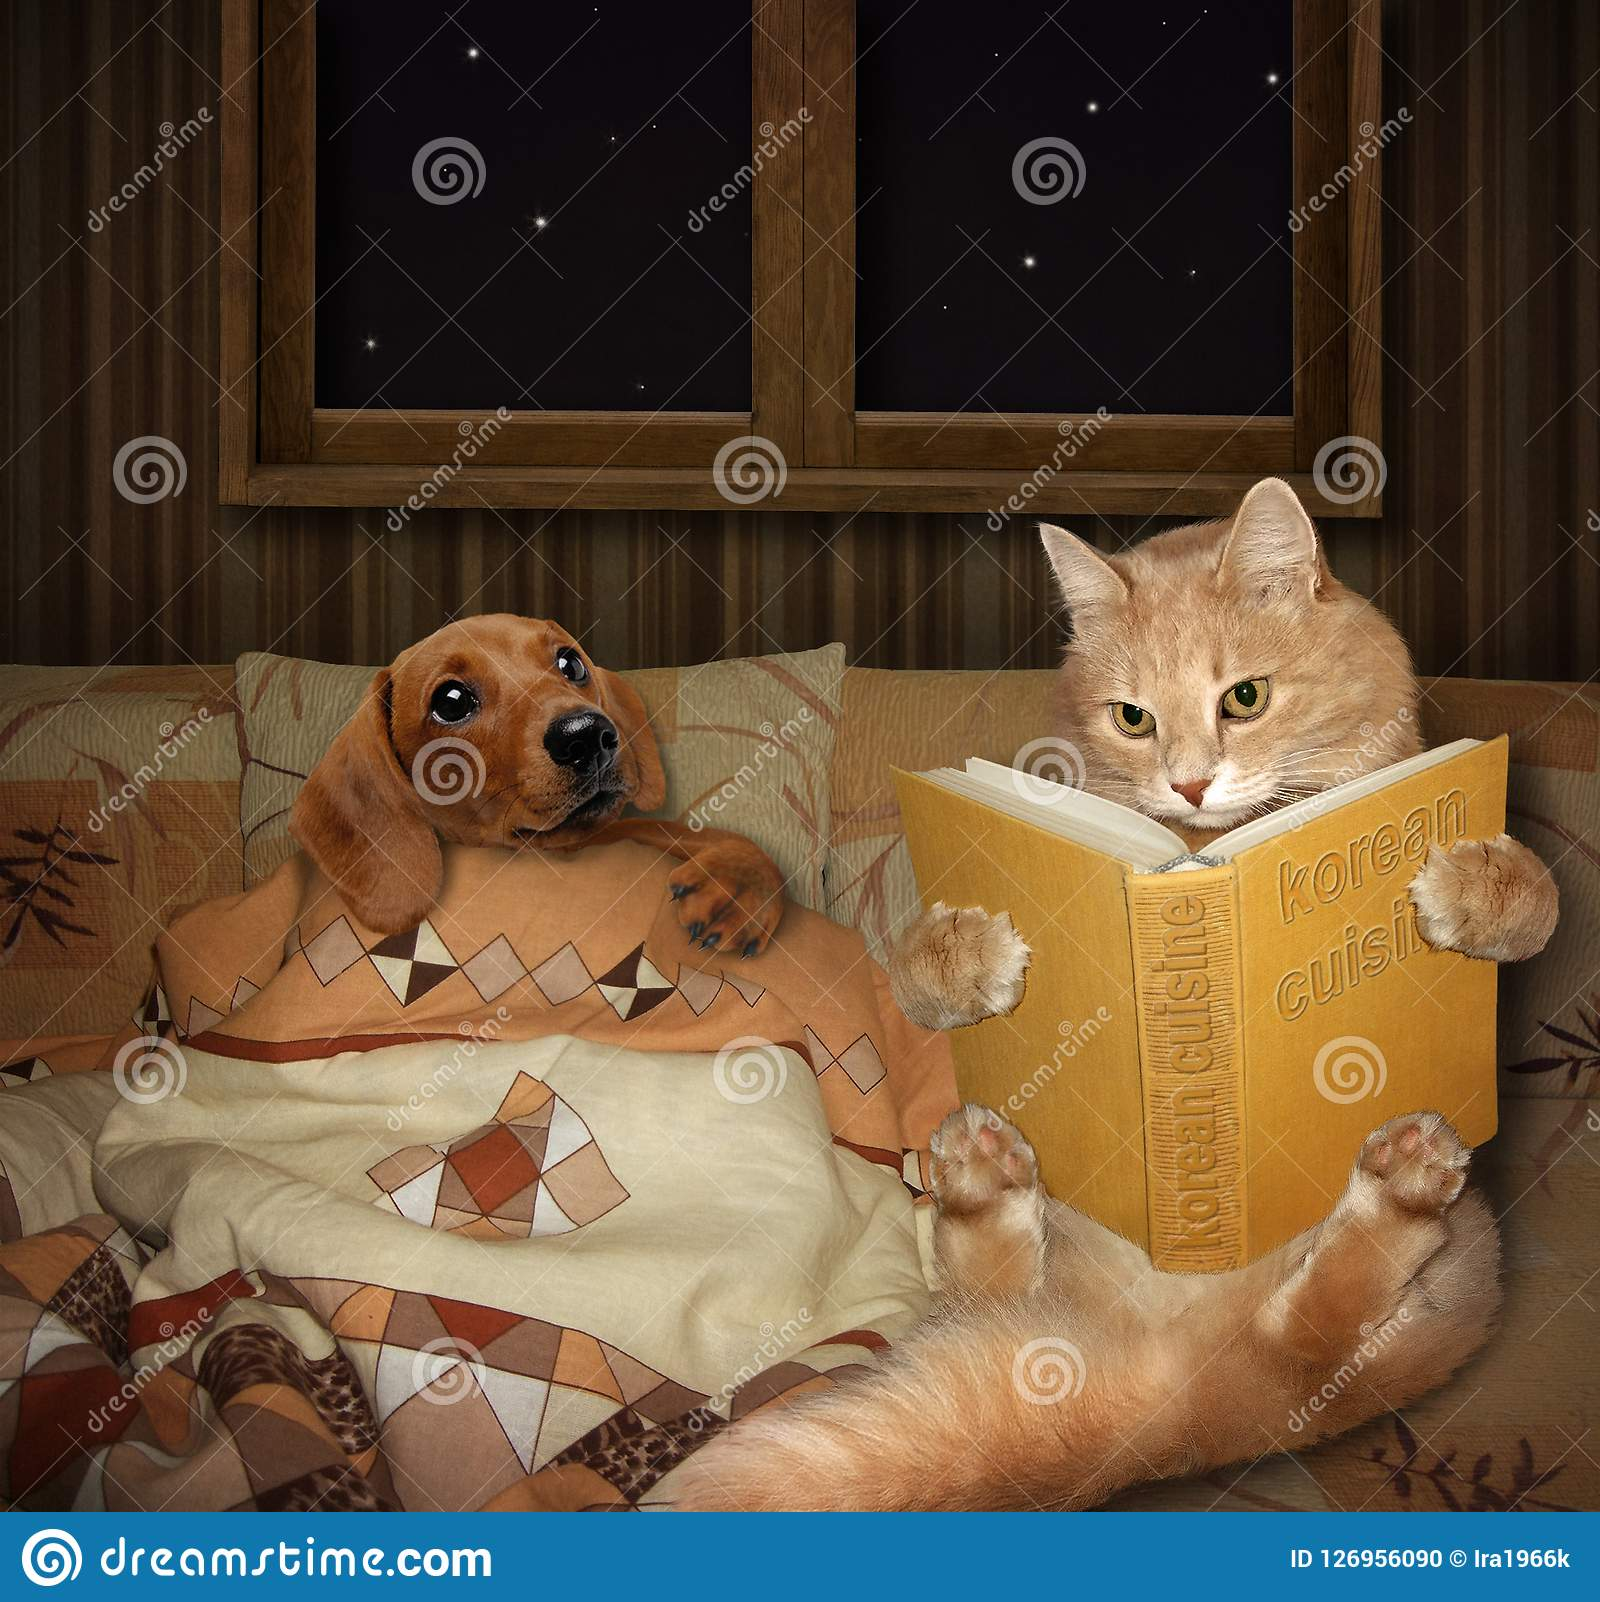 A cat reads tales  stock photo  Image of bedtime, book - 126956090